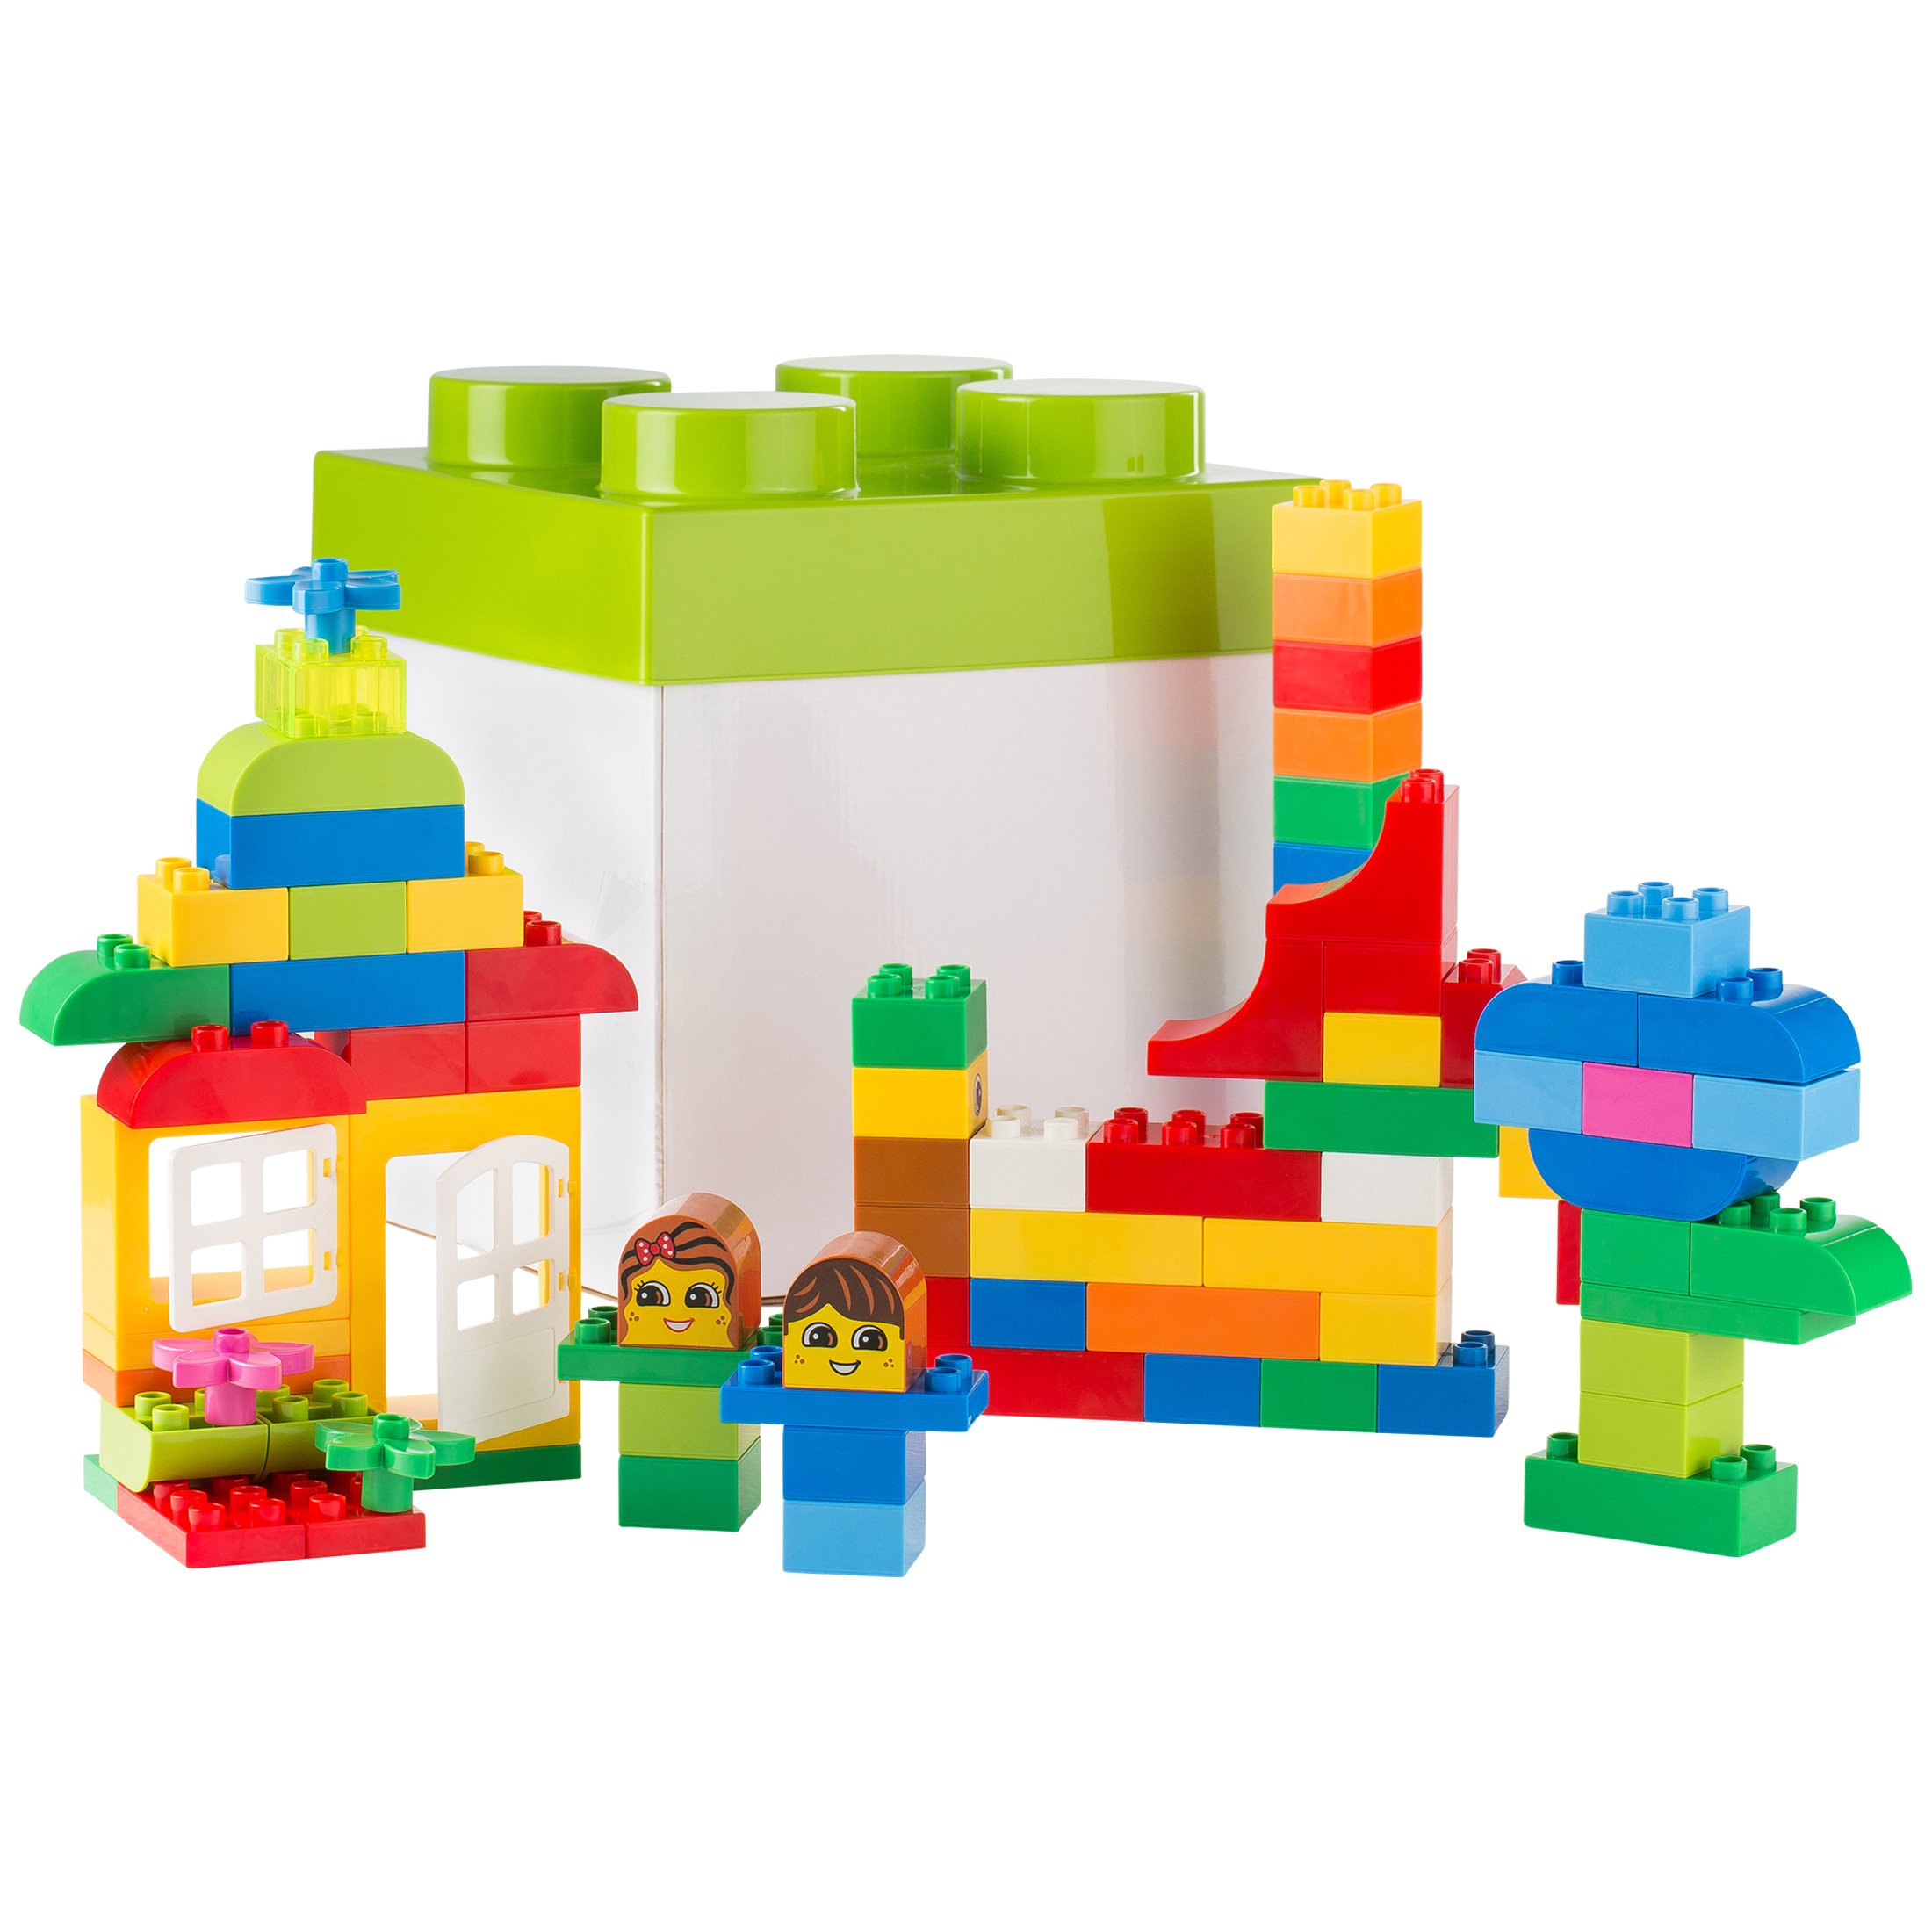 Ultrakidz Building Block Set, 85 Building Blocks from Classic to Special Blocks, Compatible with Lego Duplo - All Building Blocks Come in a Storage Box with a lid That Looks Like a Building Block